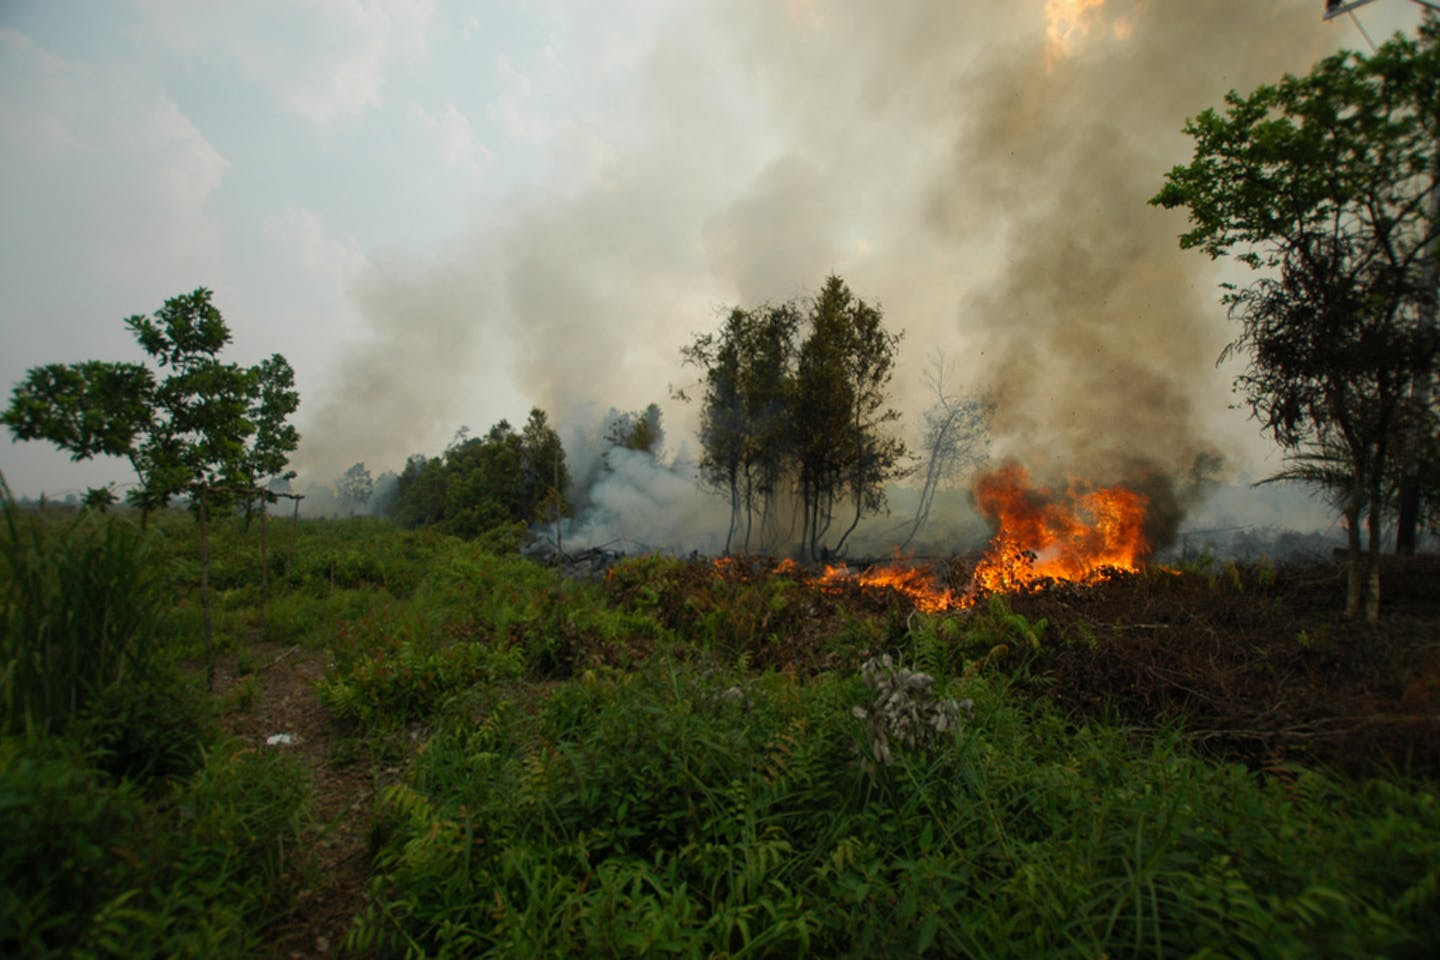 A forest fire in Kalimantan